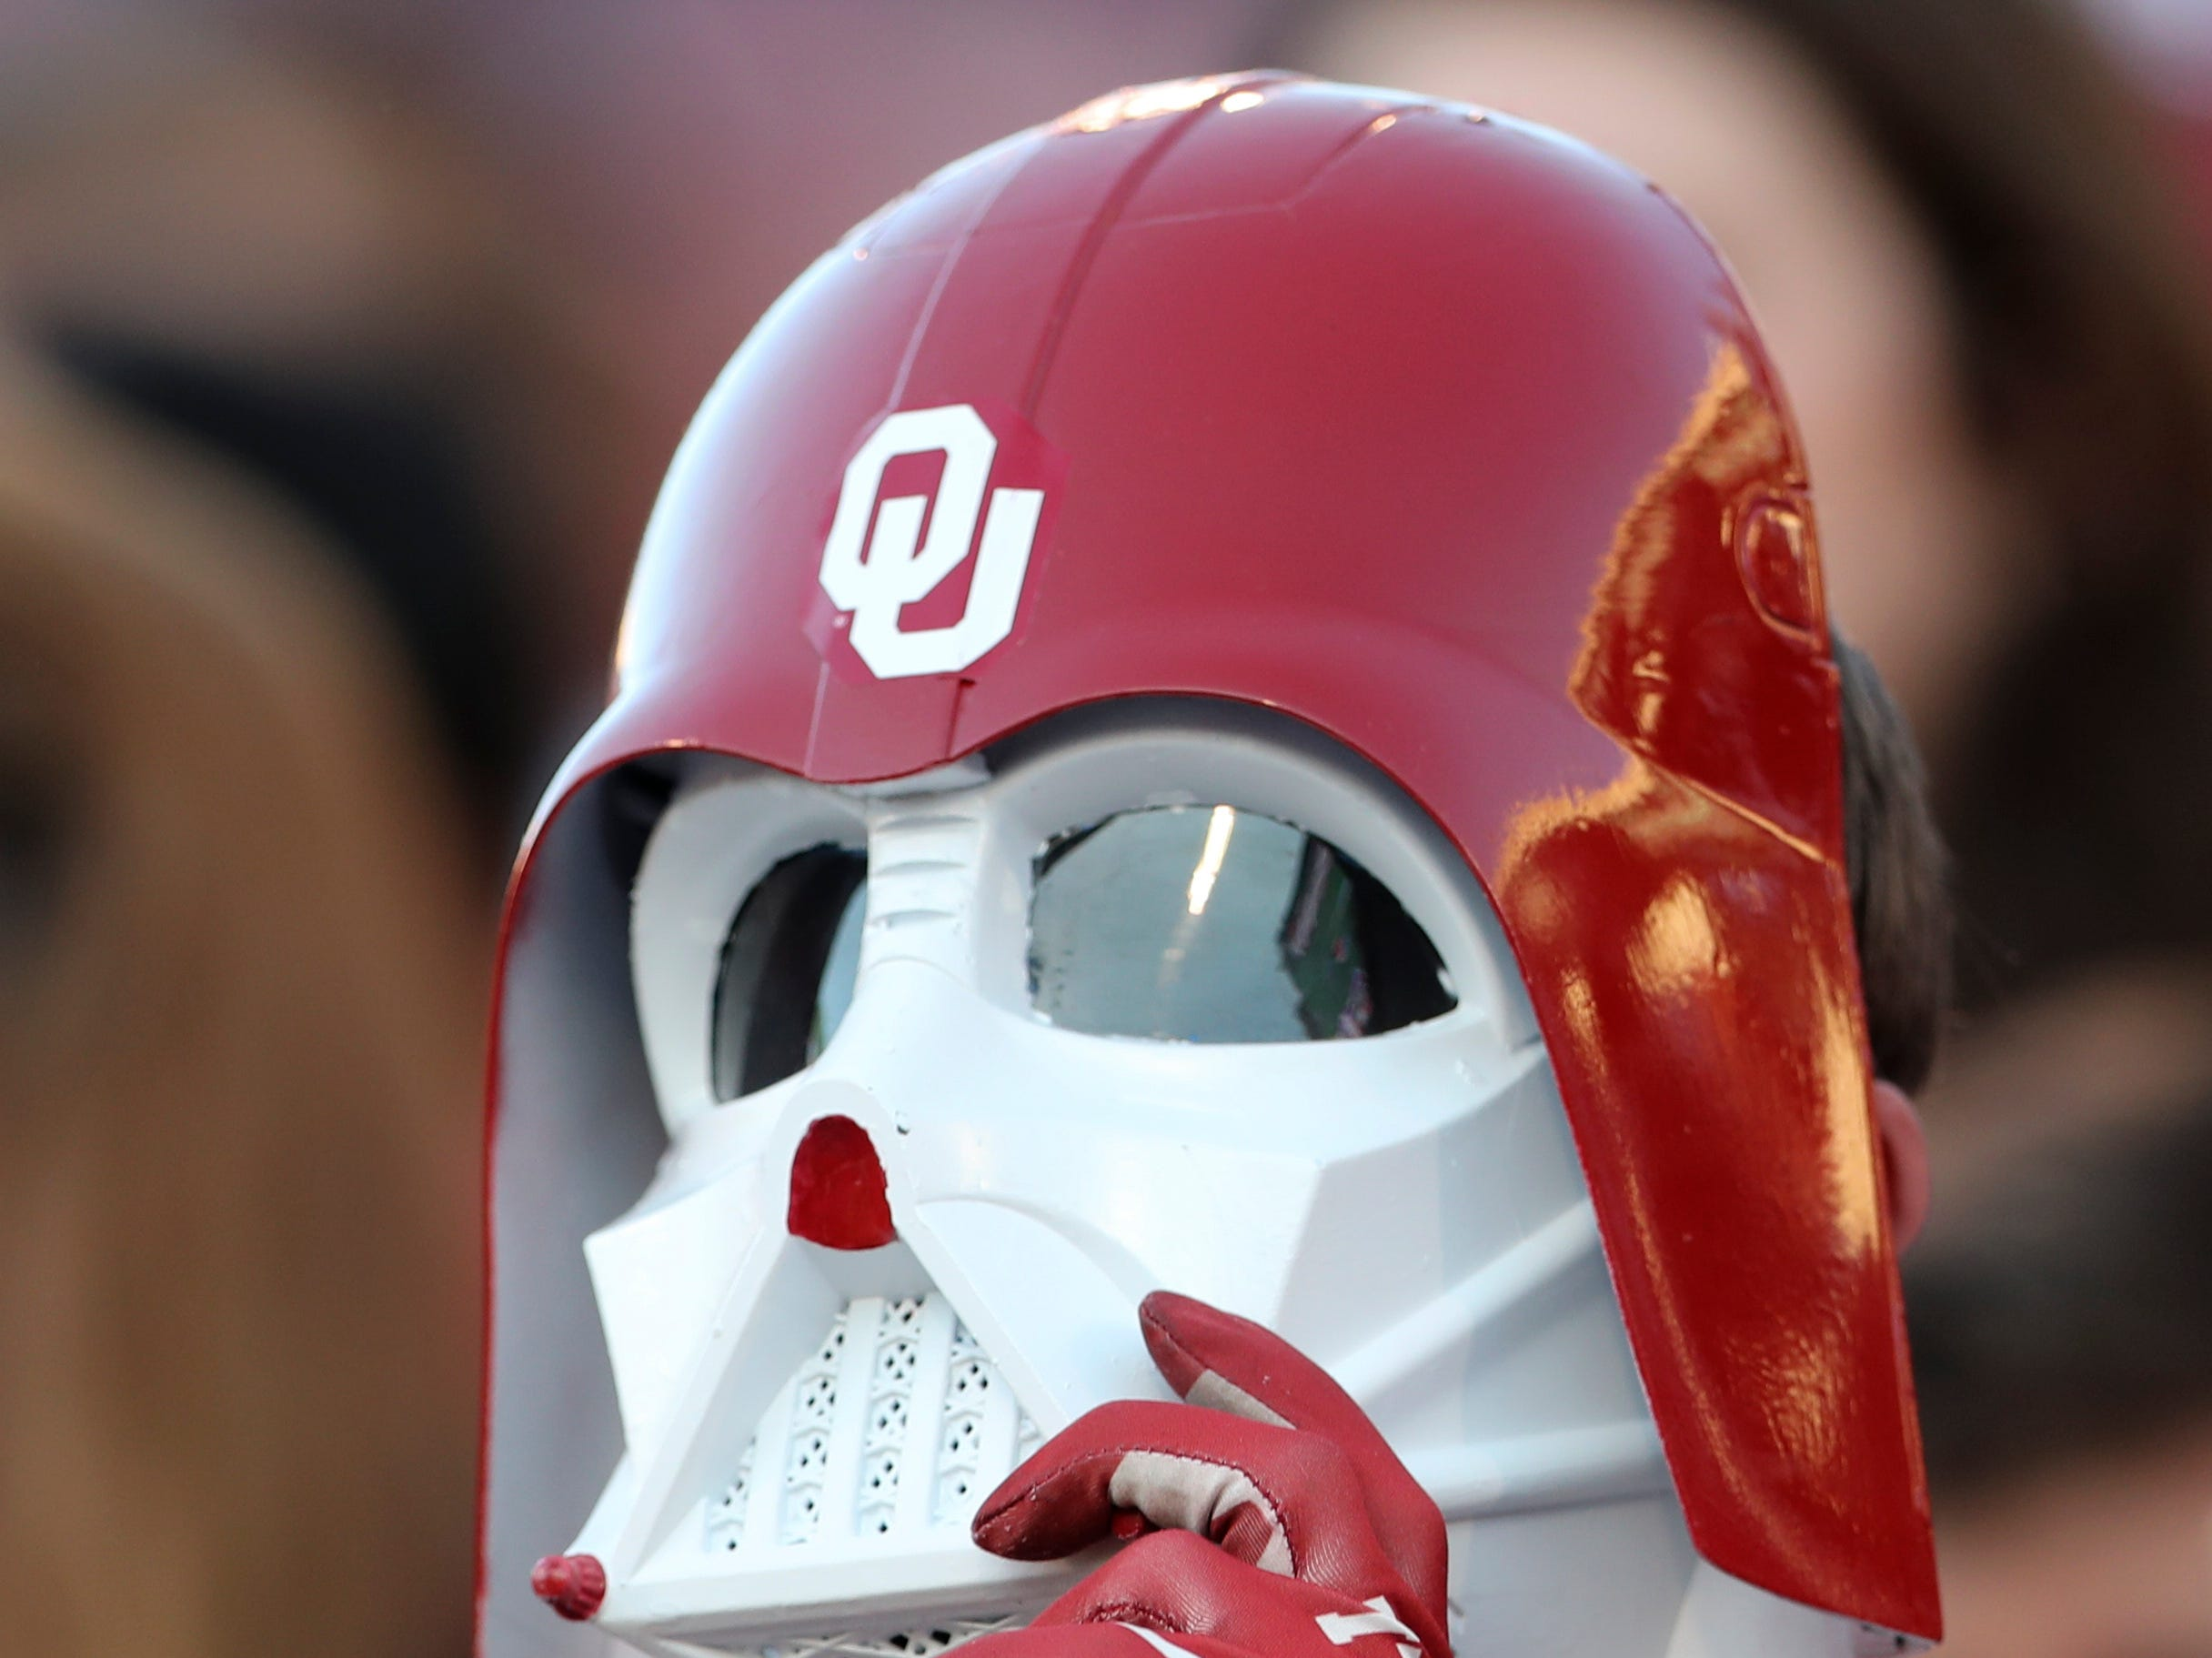 Week 9: An Oklahoma Sooners fan dressed in a Darth Vader mask watches the game against the Kansas State Wildcats at Gaylord Family - Oklahoma Memorial Stadium.